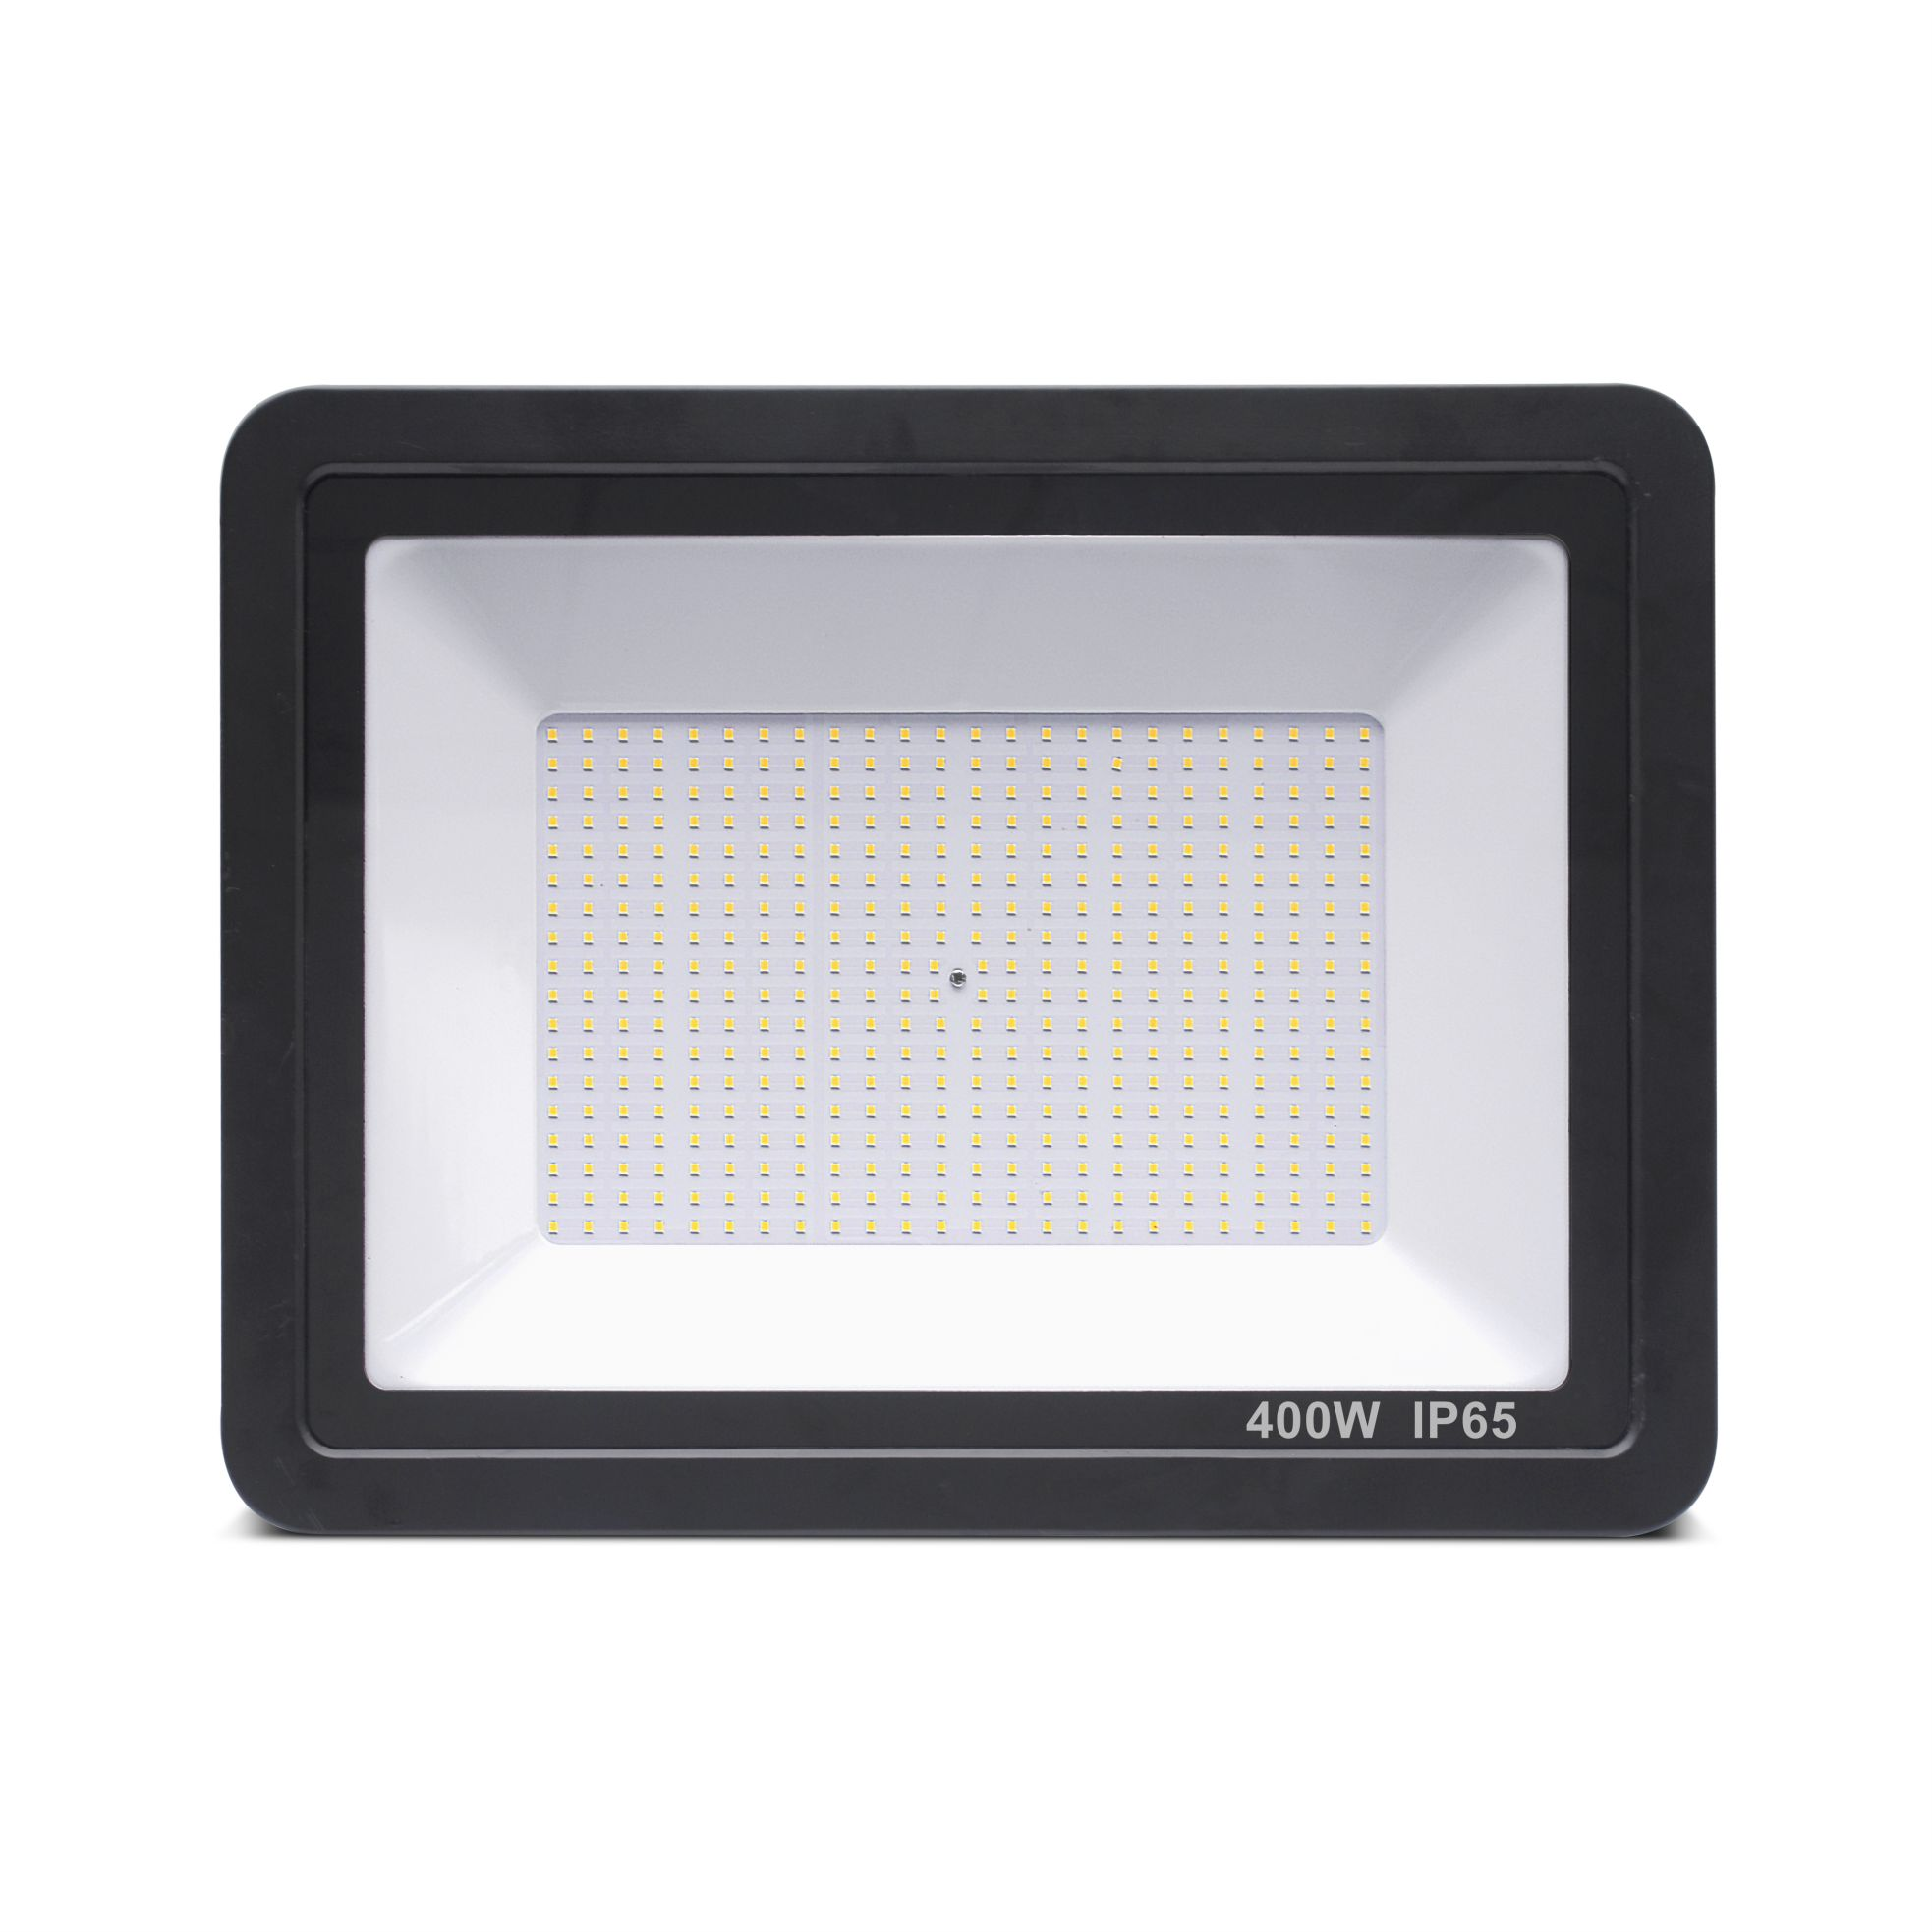 400W LED Flood Light Outdoor, Super Bright Outdoor Work Light,  IP65 Waterproof, 36000lm, 6000K,  White Light for Garden